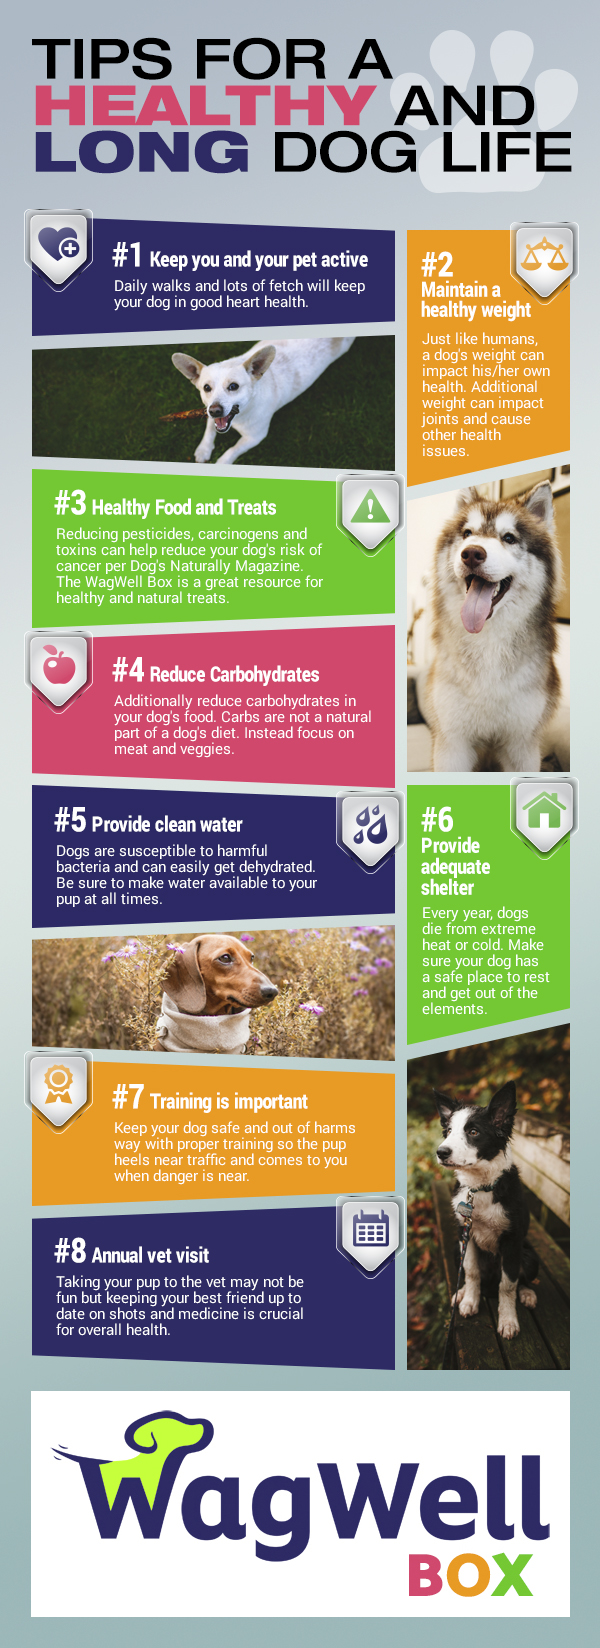 Tips for a healthy and long dog life